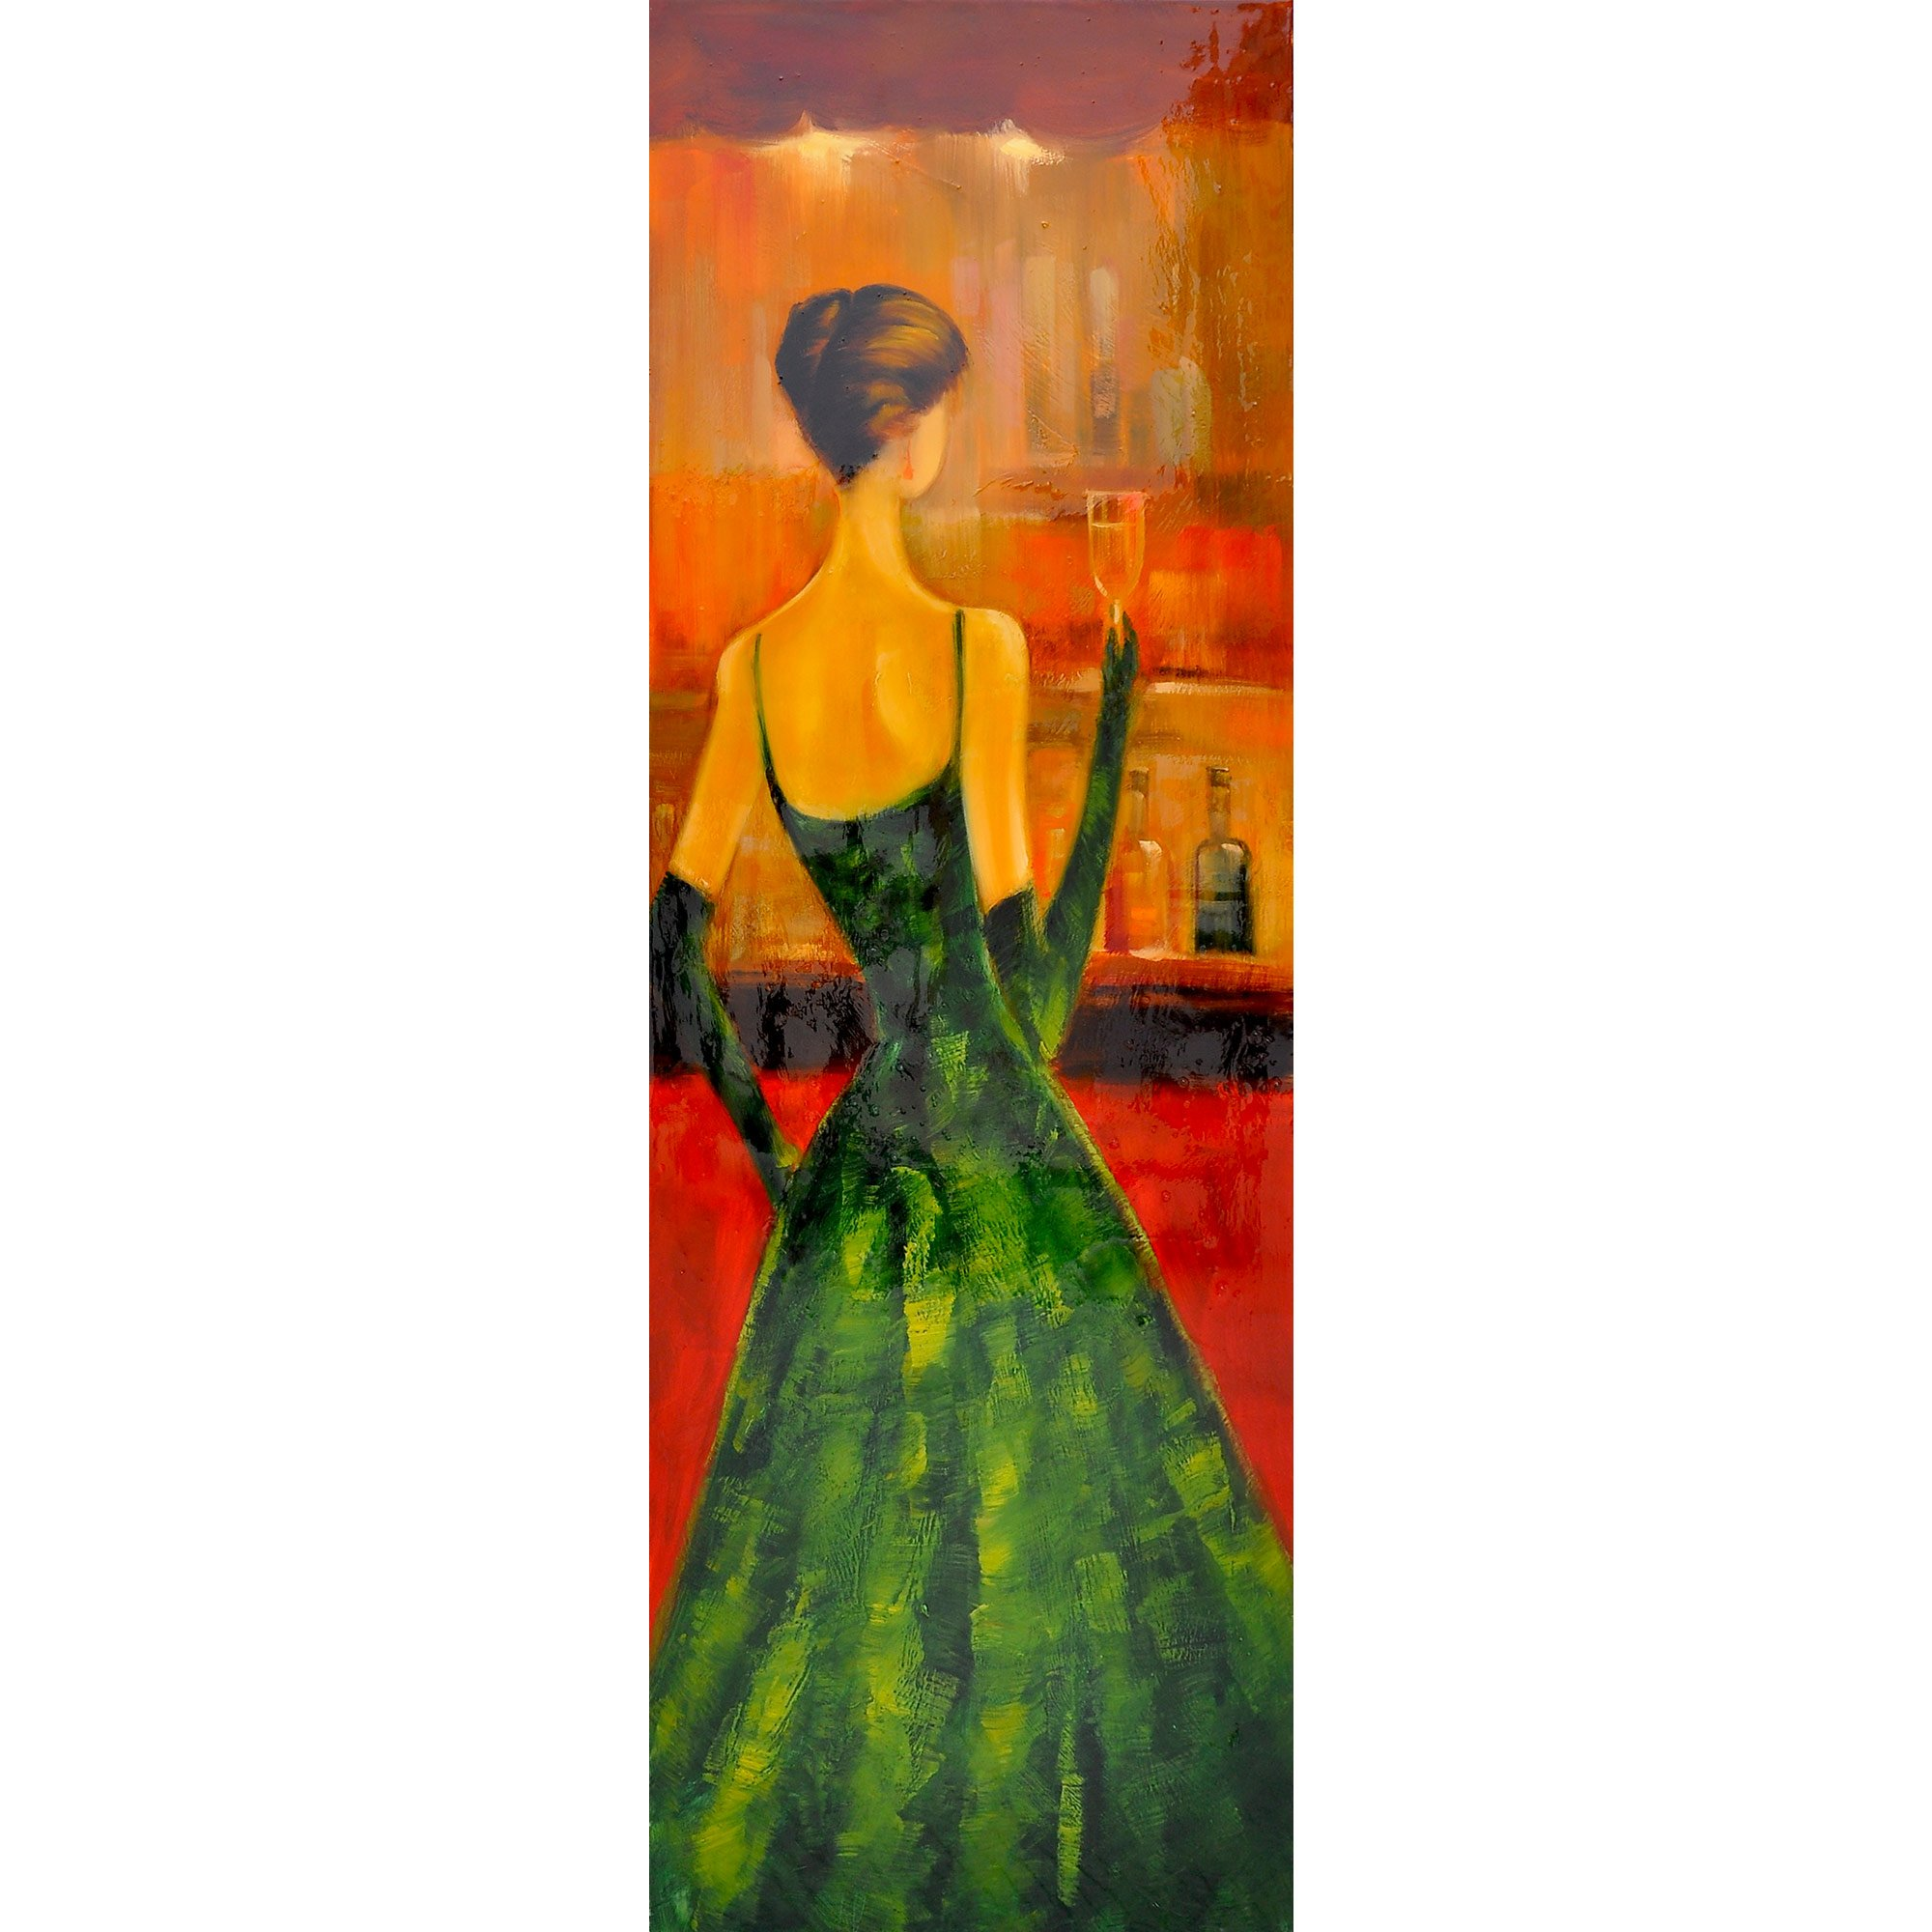 Yosemite Home Decor FCB4660Q-2 Women of Distinction Green Hand Painted Wall Art by Yosemite Home Decor